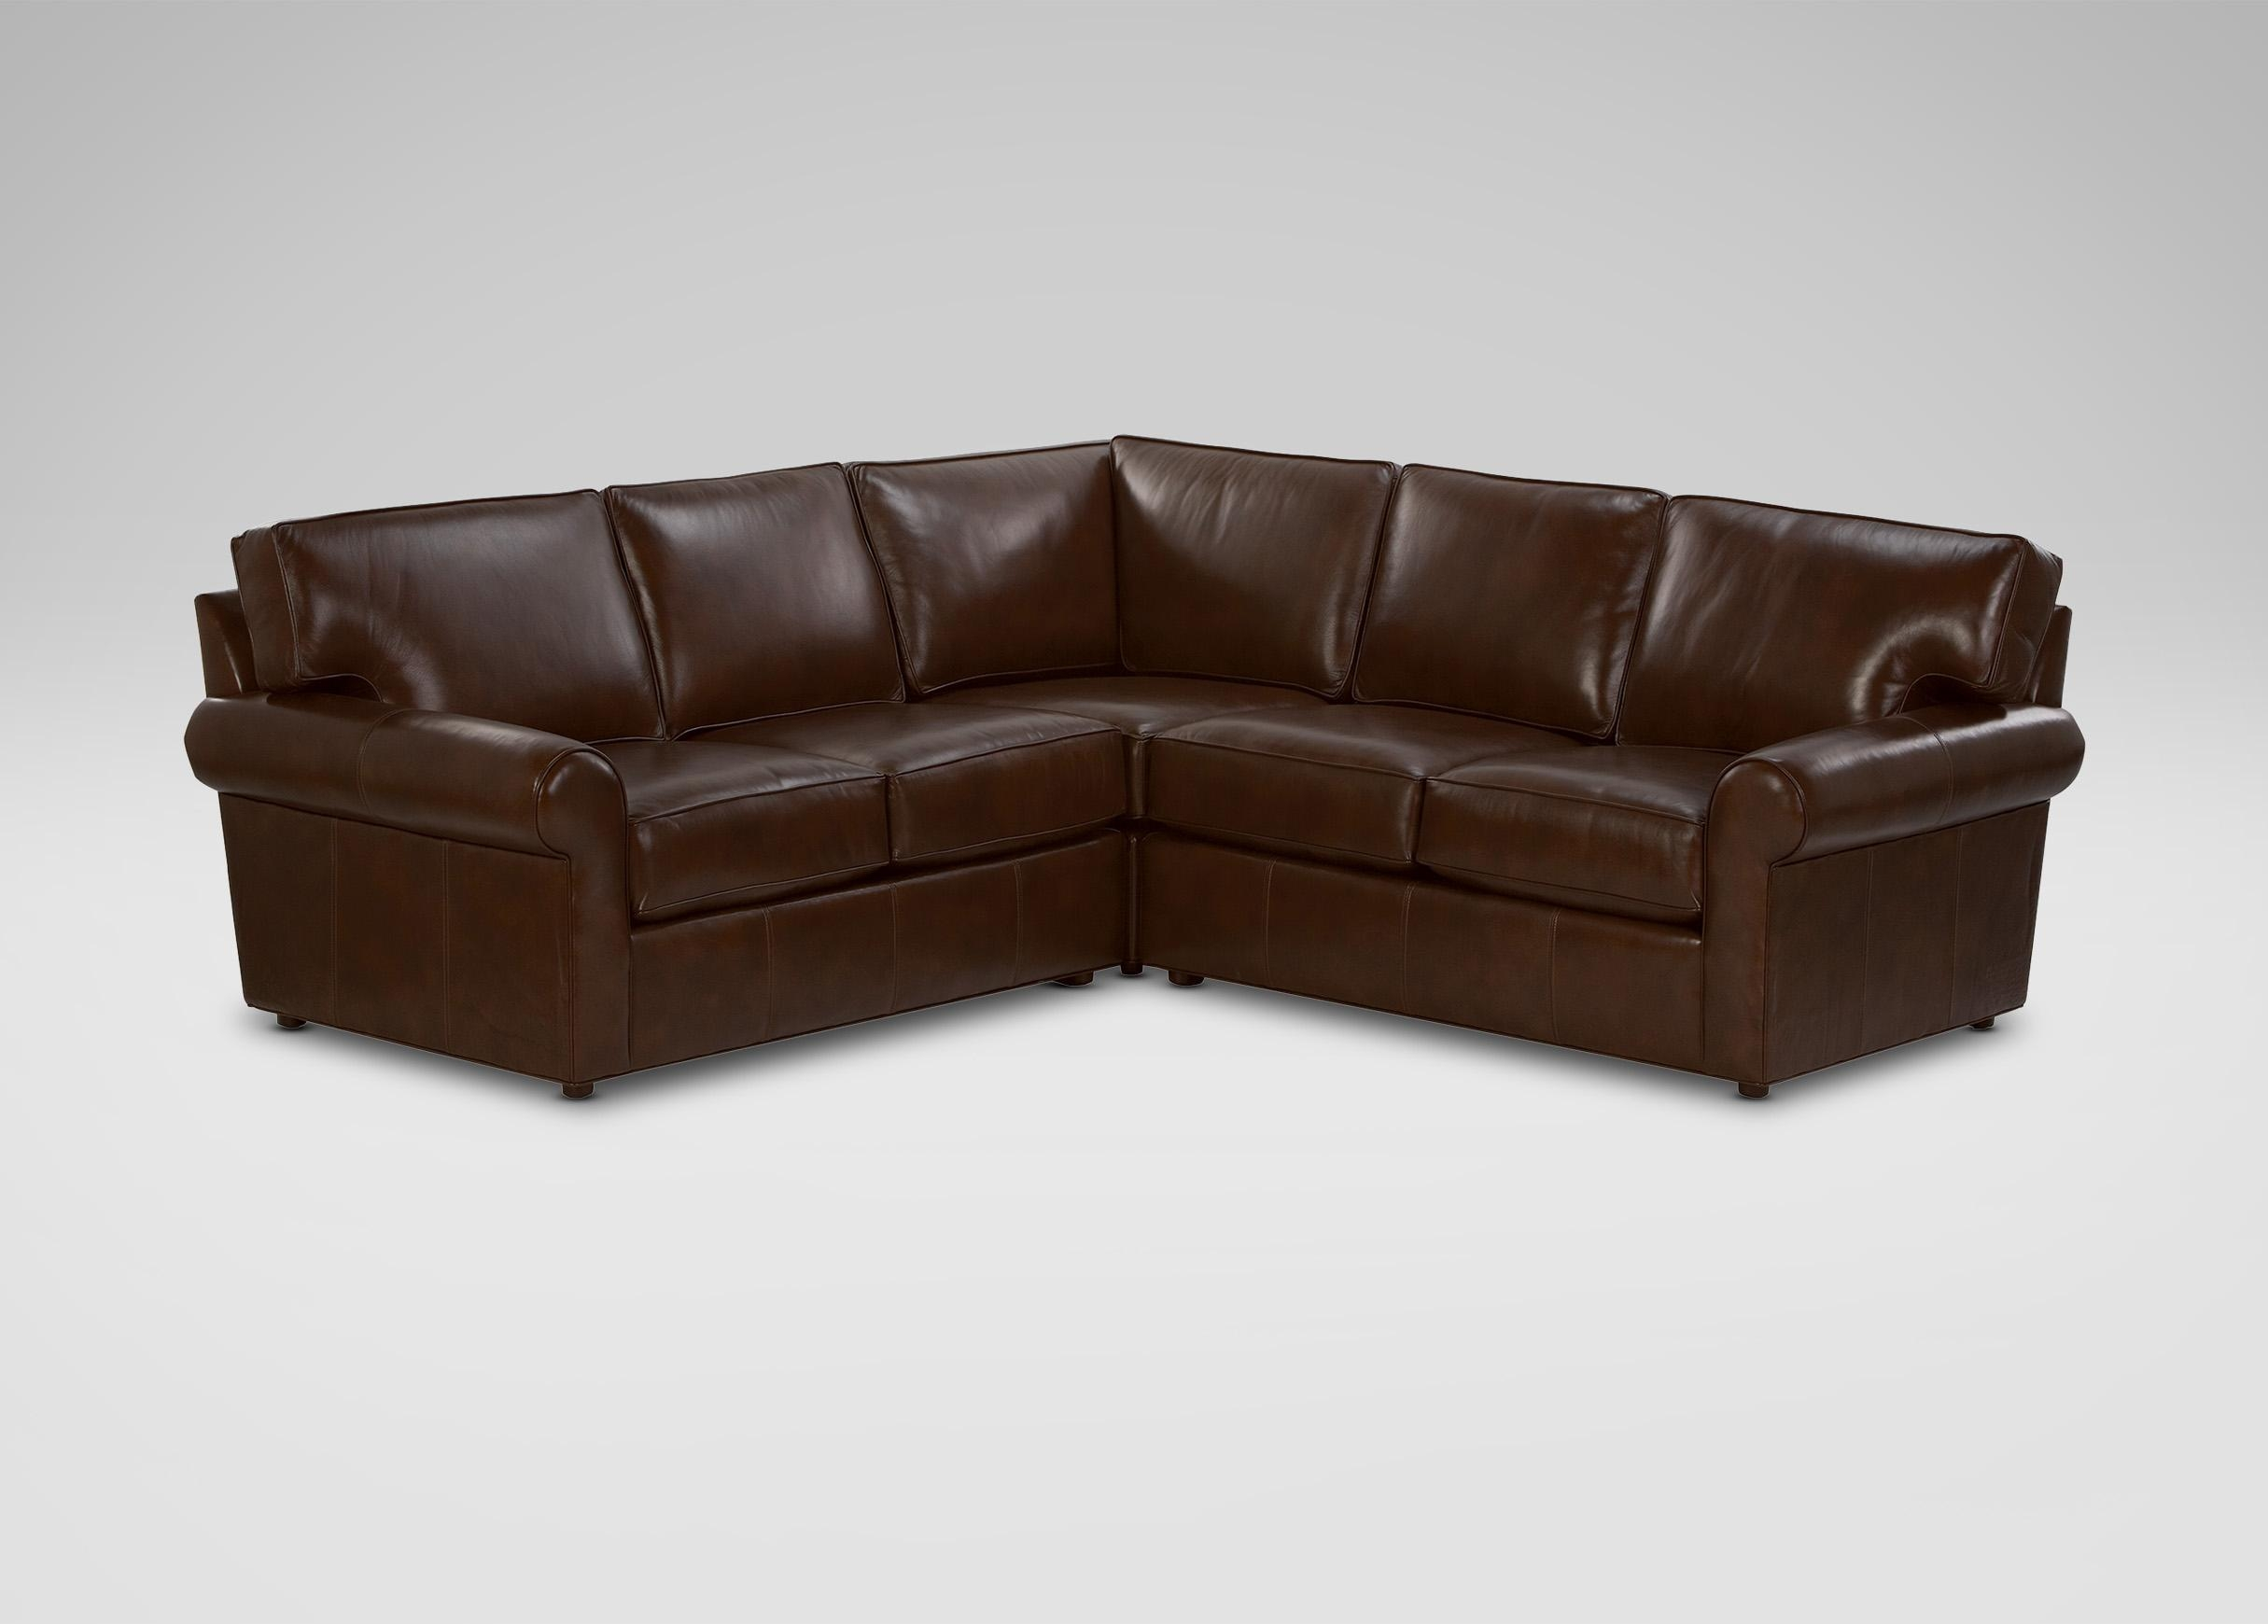 chadwick sofa chair and covers nz 20 top sofas ideas